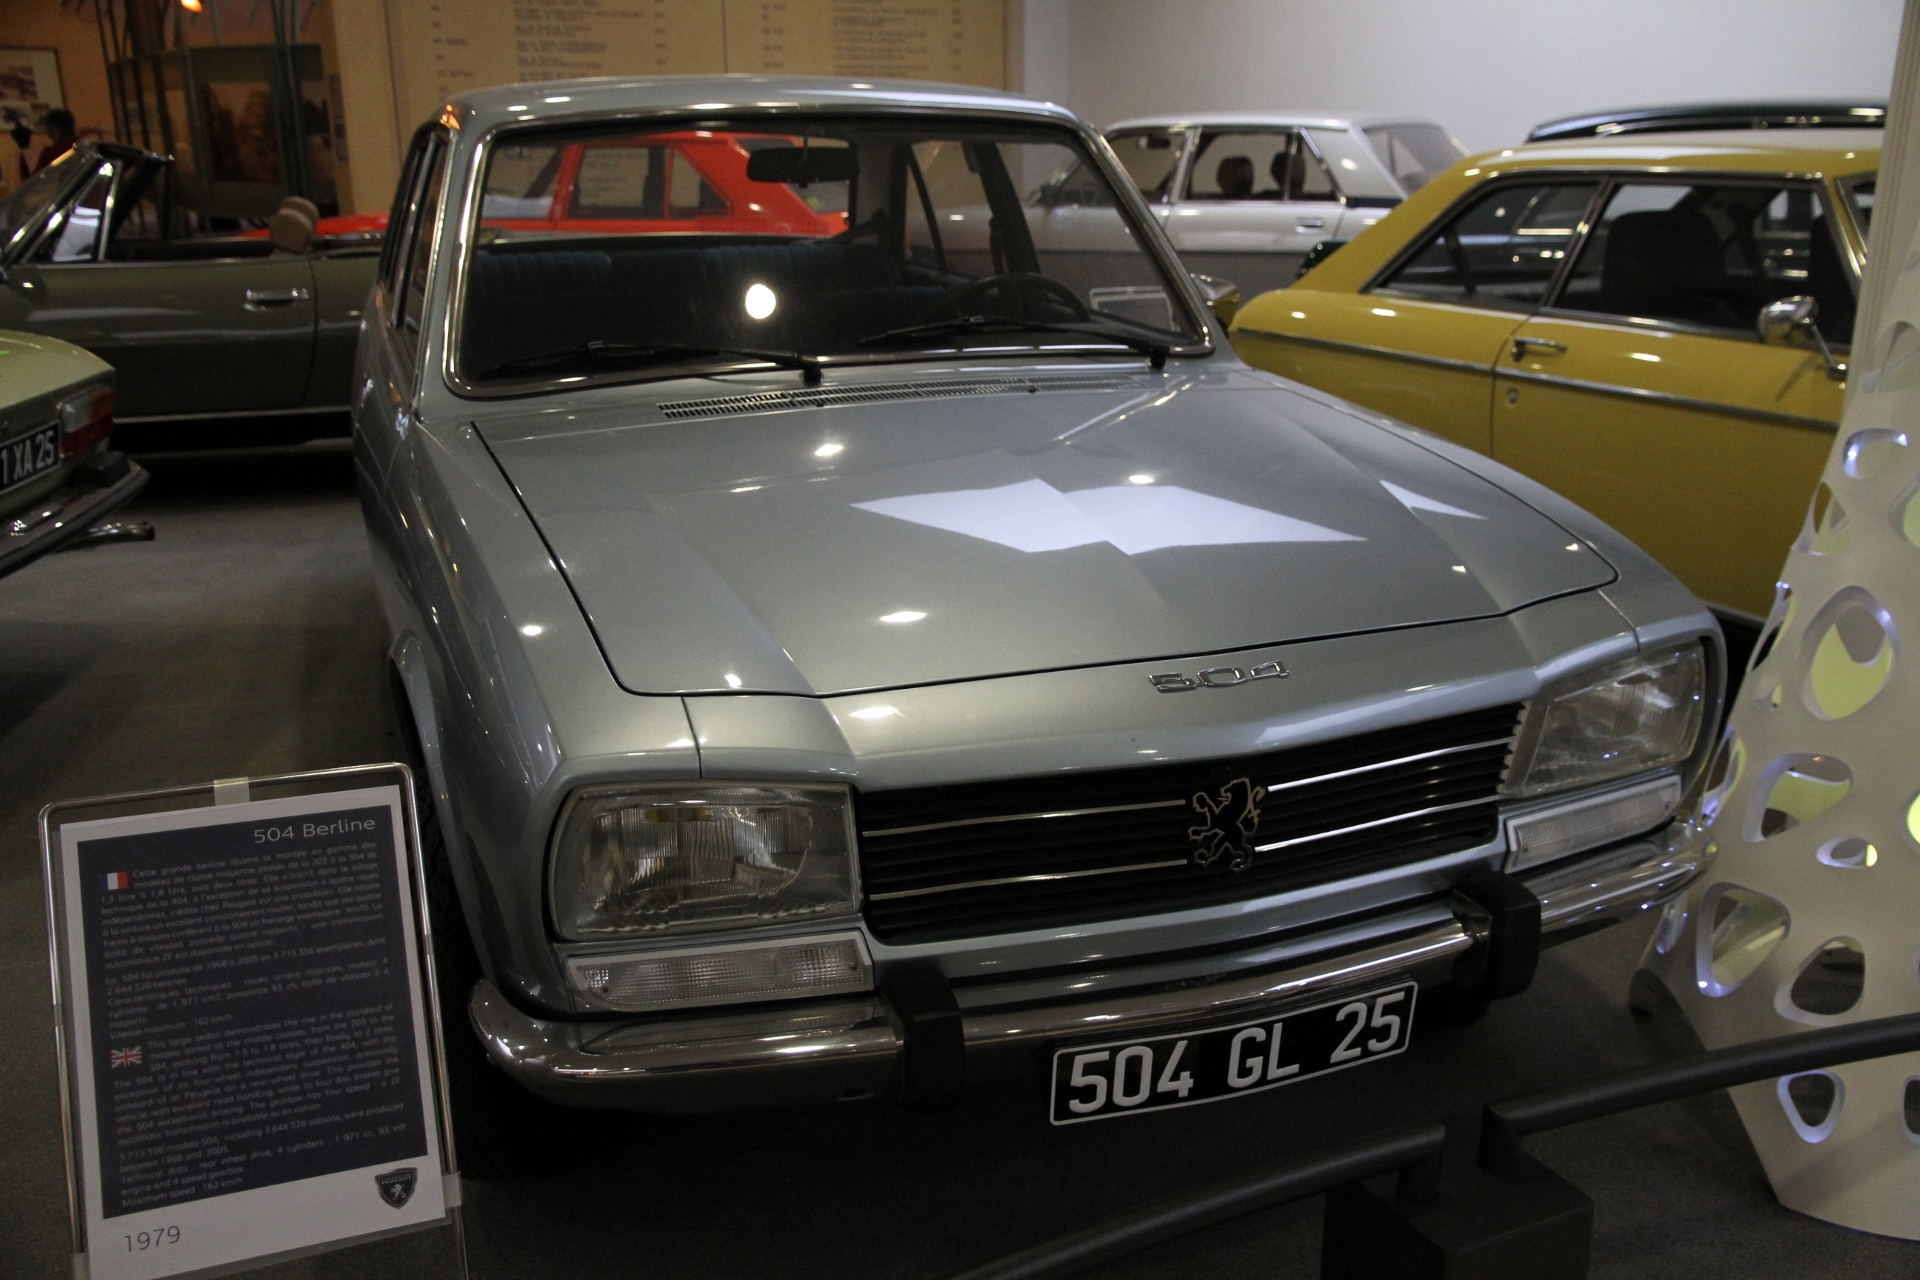 file:peugeot 504 berline - wikimedia commons